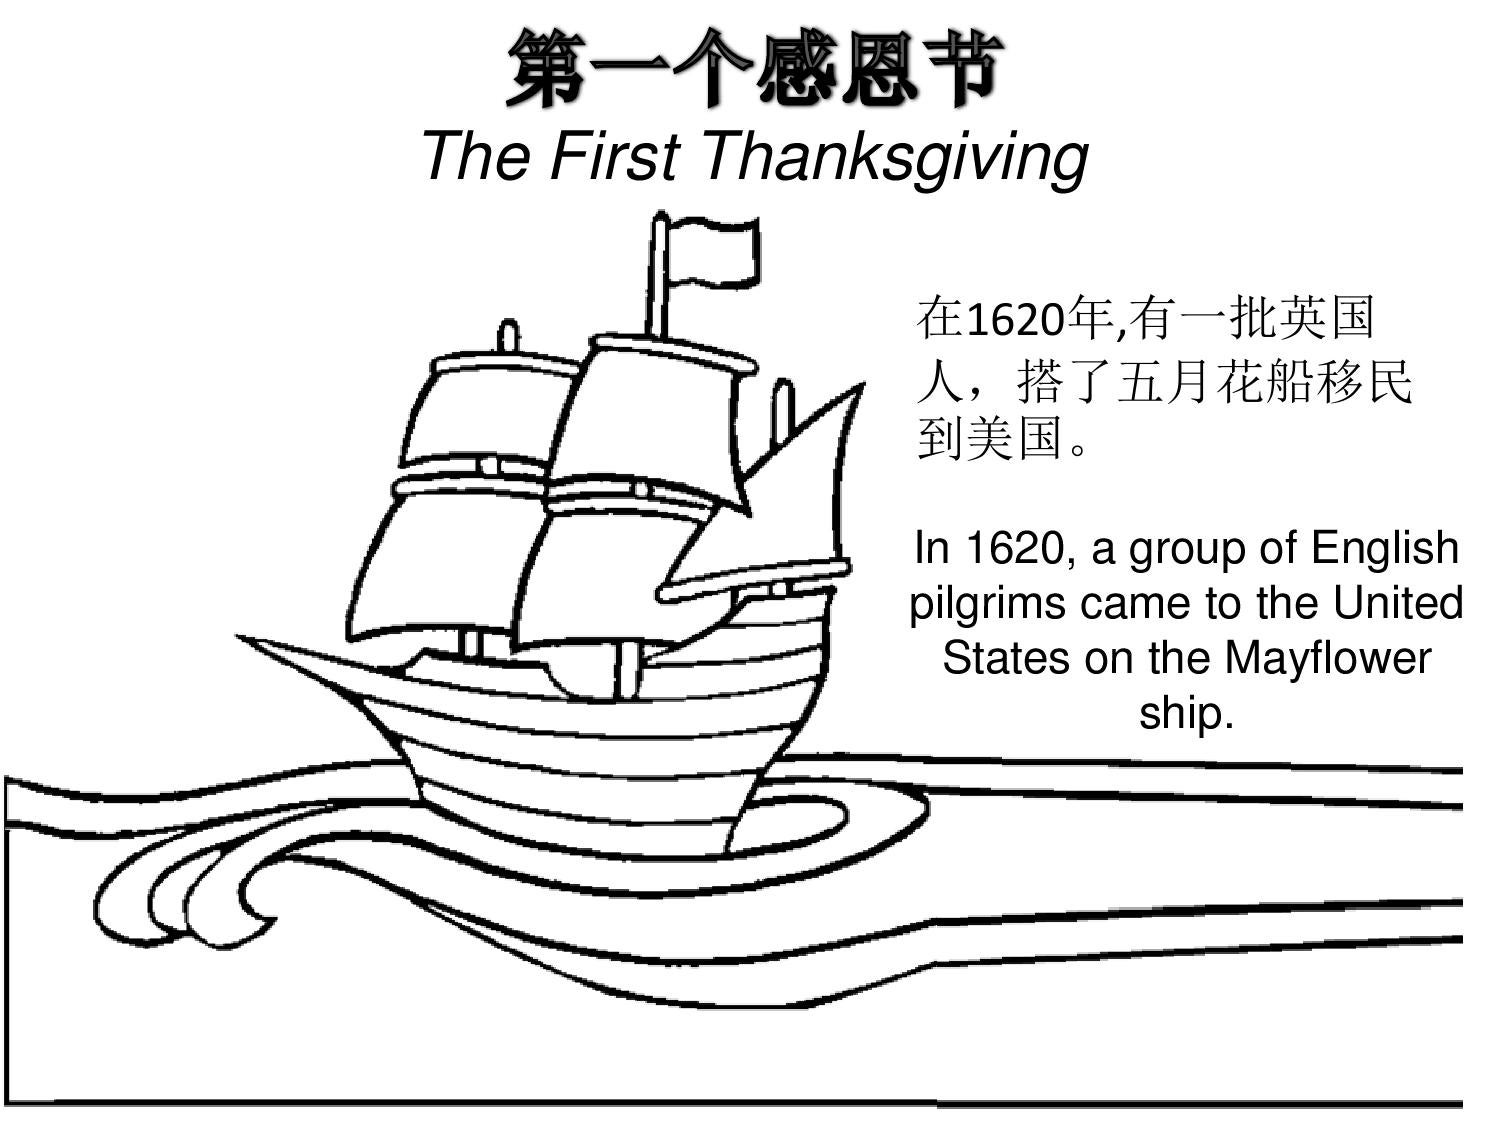 Charming Pilgrims Mayflower Coloring Page Contemporary ...